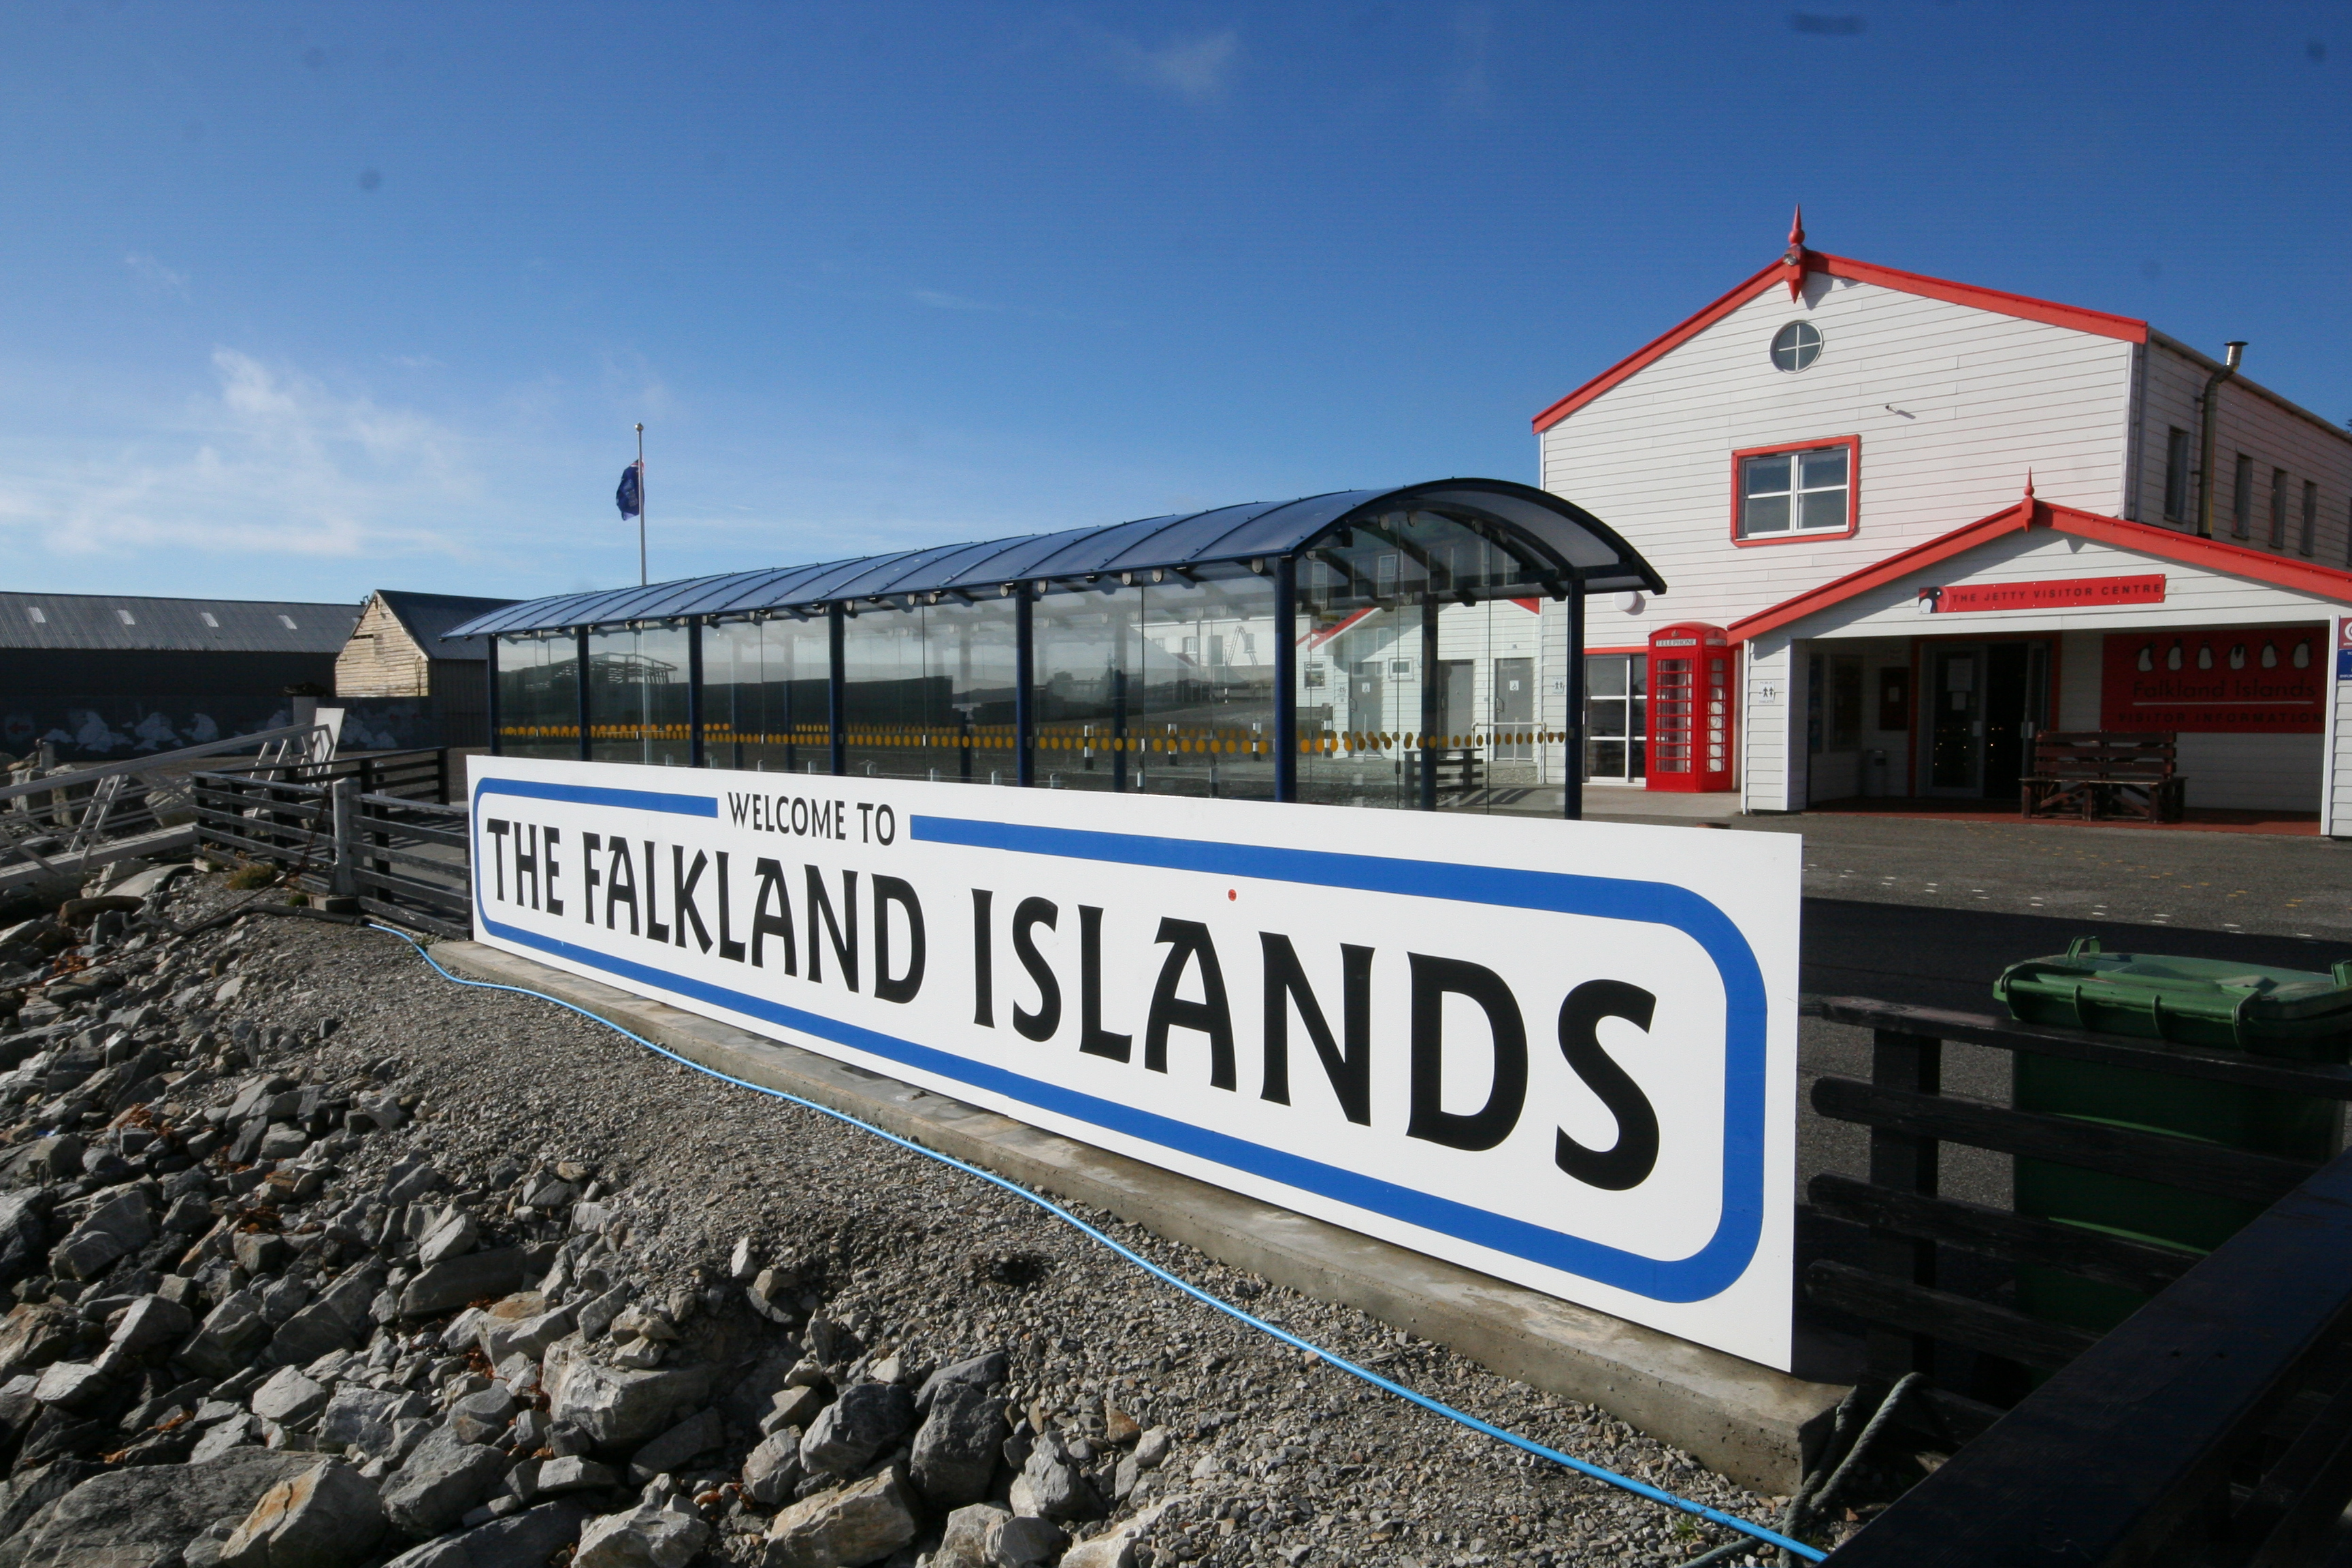 Welcome to the Falkland Islands